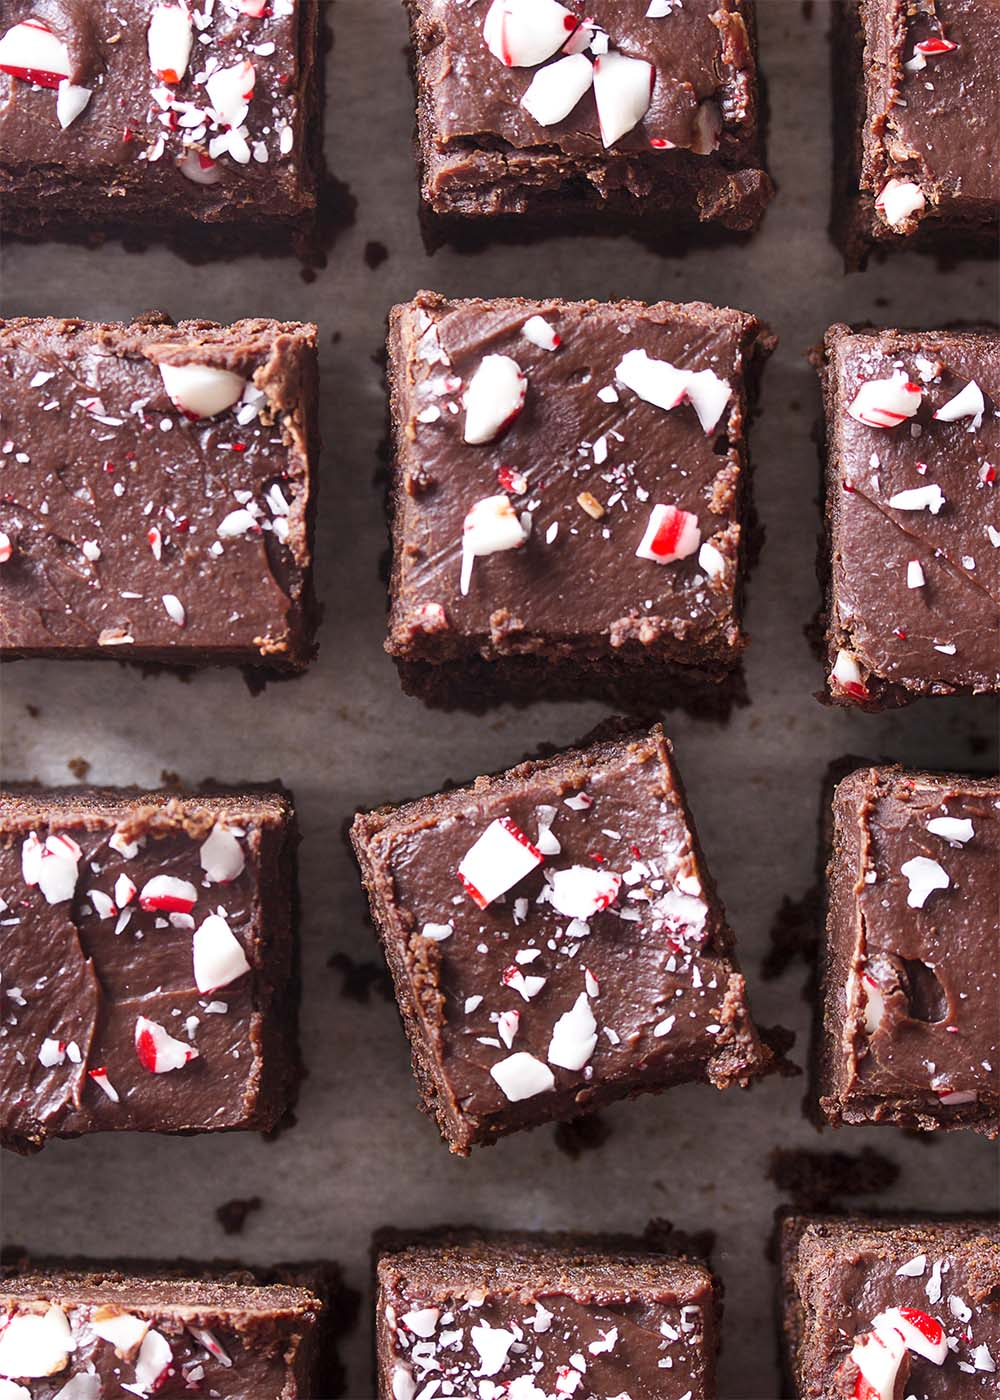 Top view of a grid of fudgy brownies sprinkled with crushed candy canes.